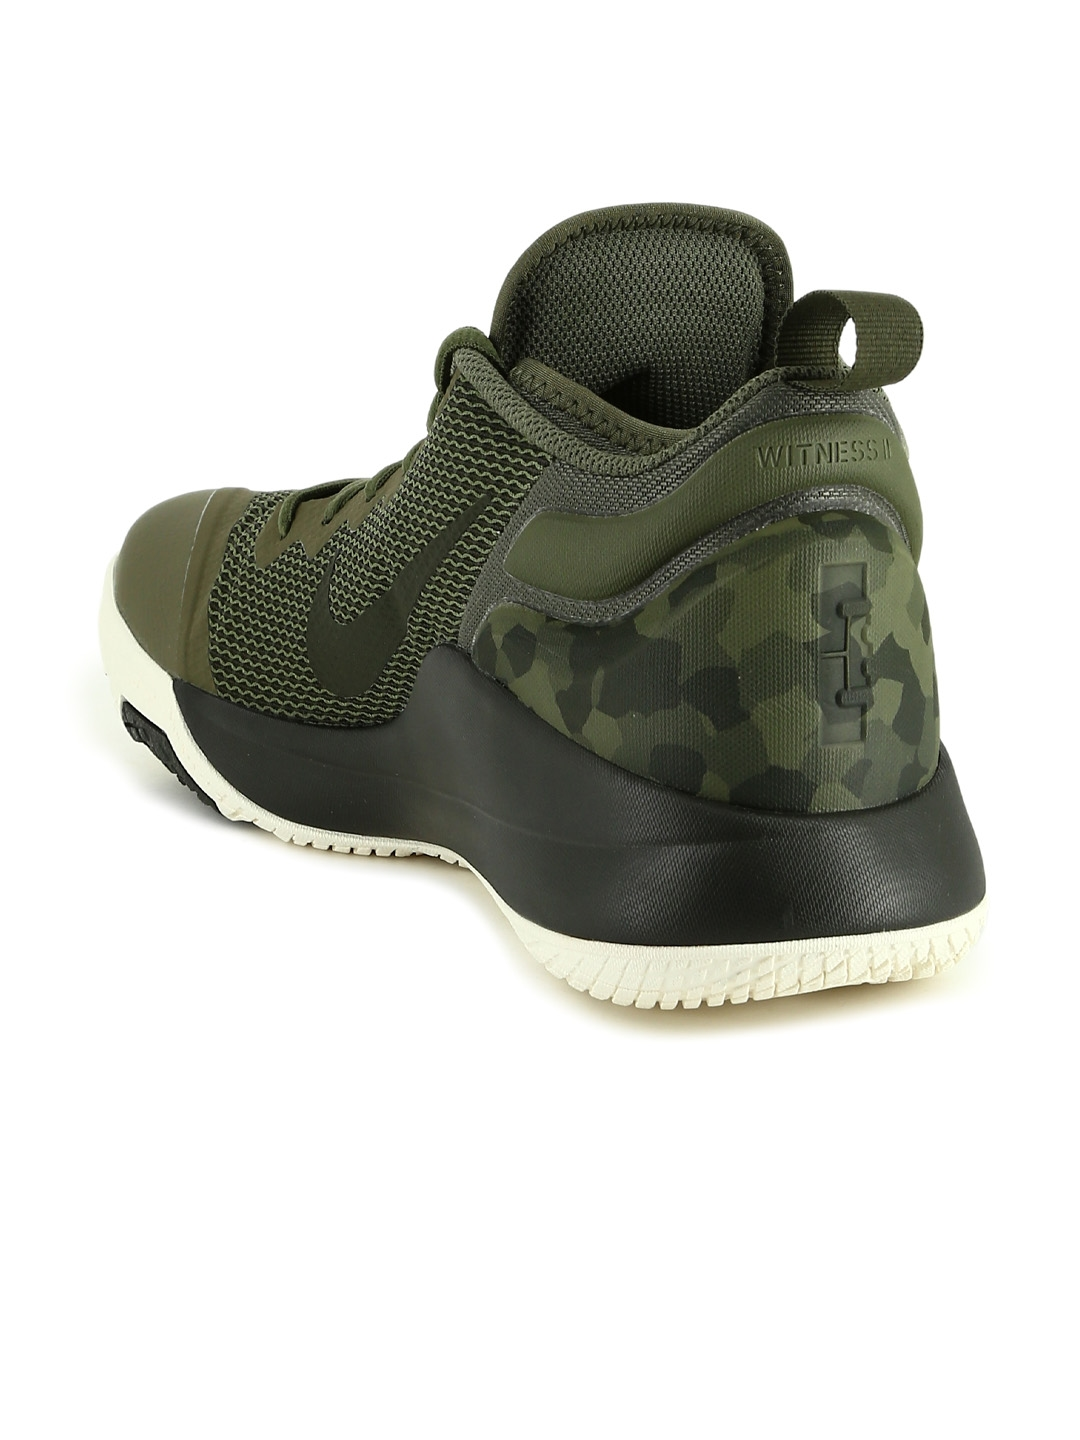 huge discount d7112 ee488 11516336255776-Nike-Men-Olive-Green-Textile-Mid-Top-Basketball-Shoes -891516336255702-2.jpg